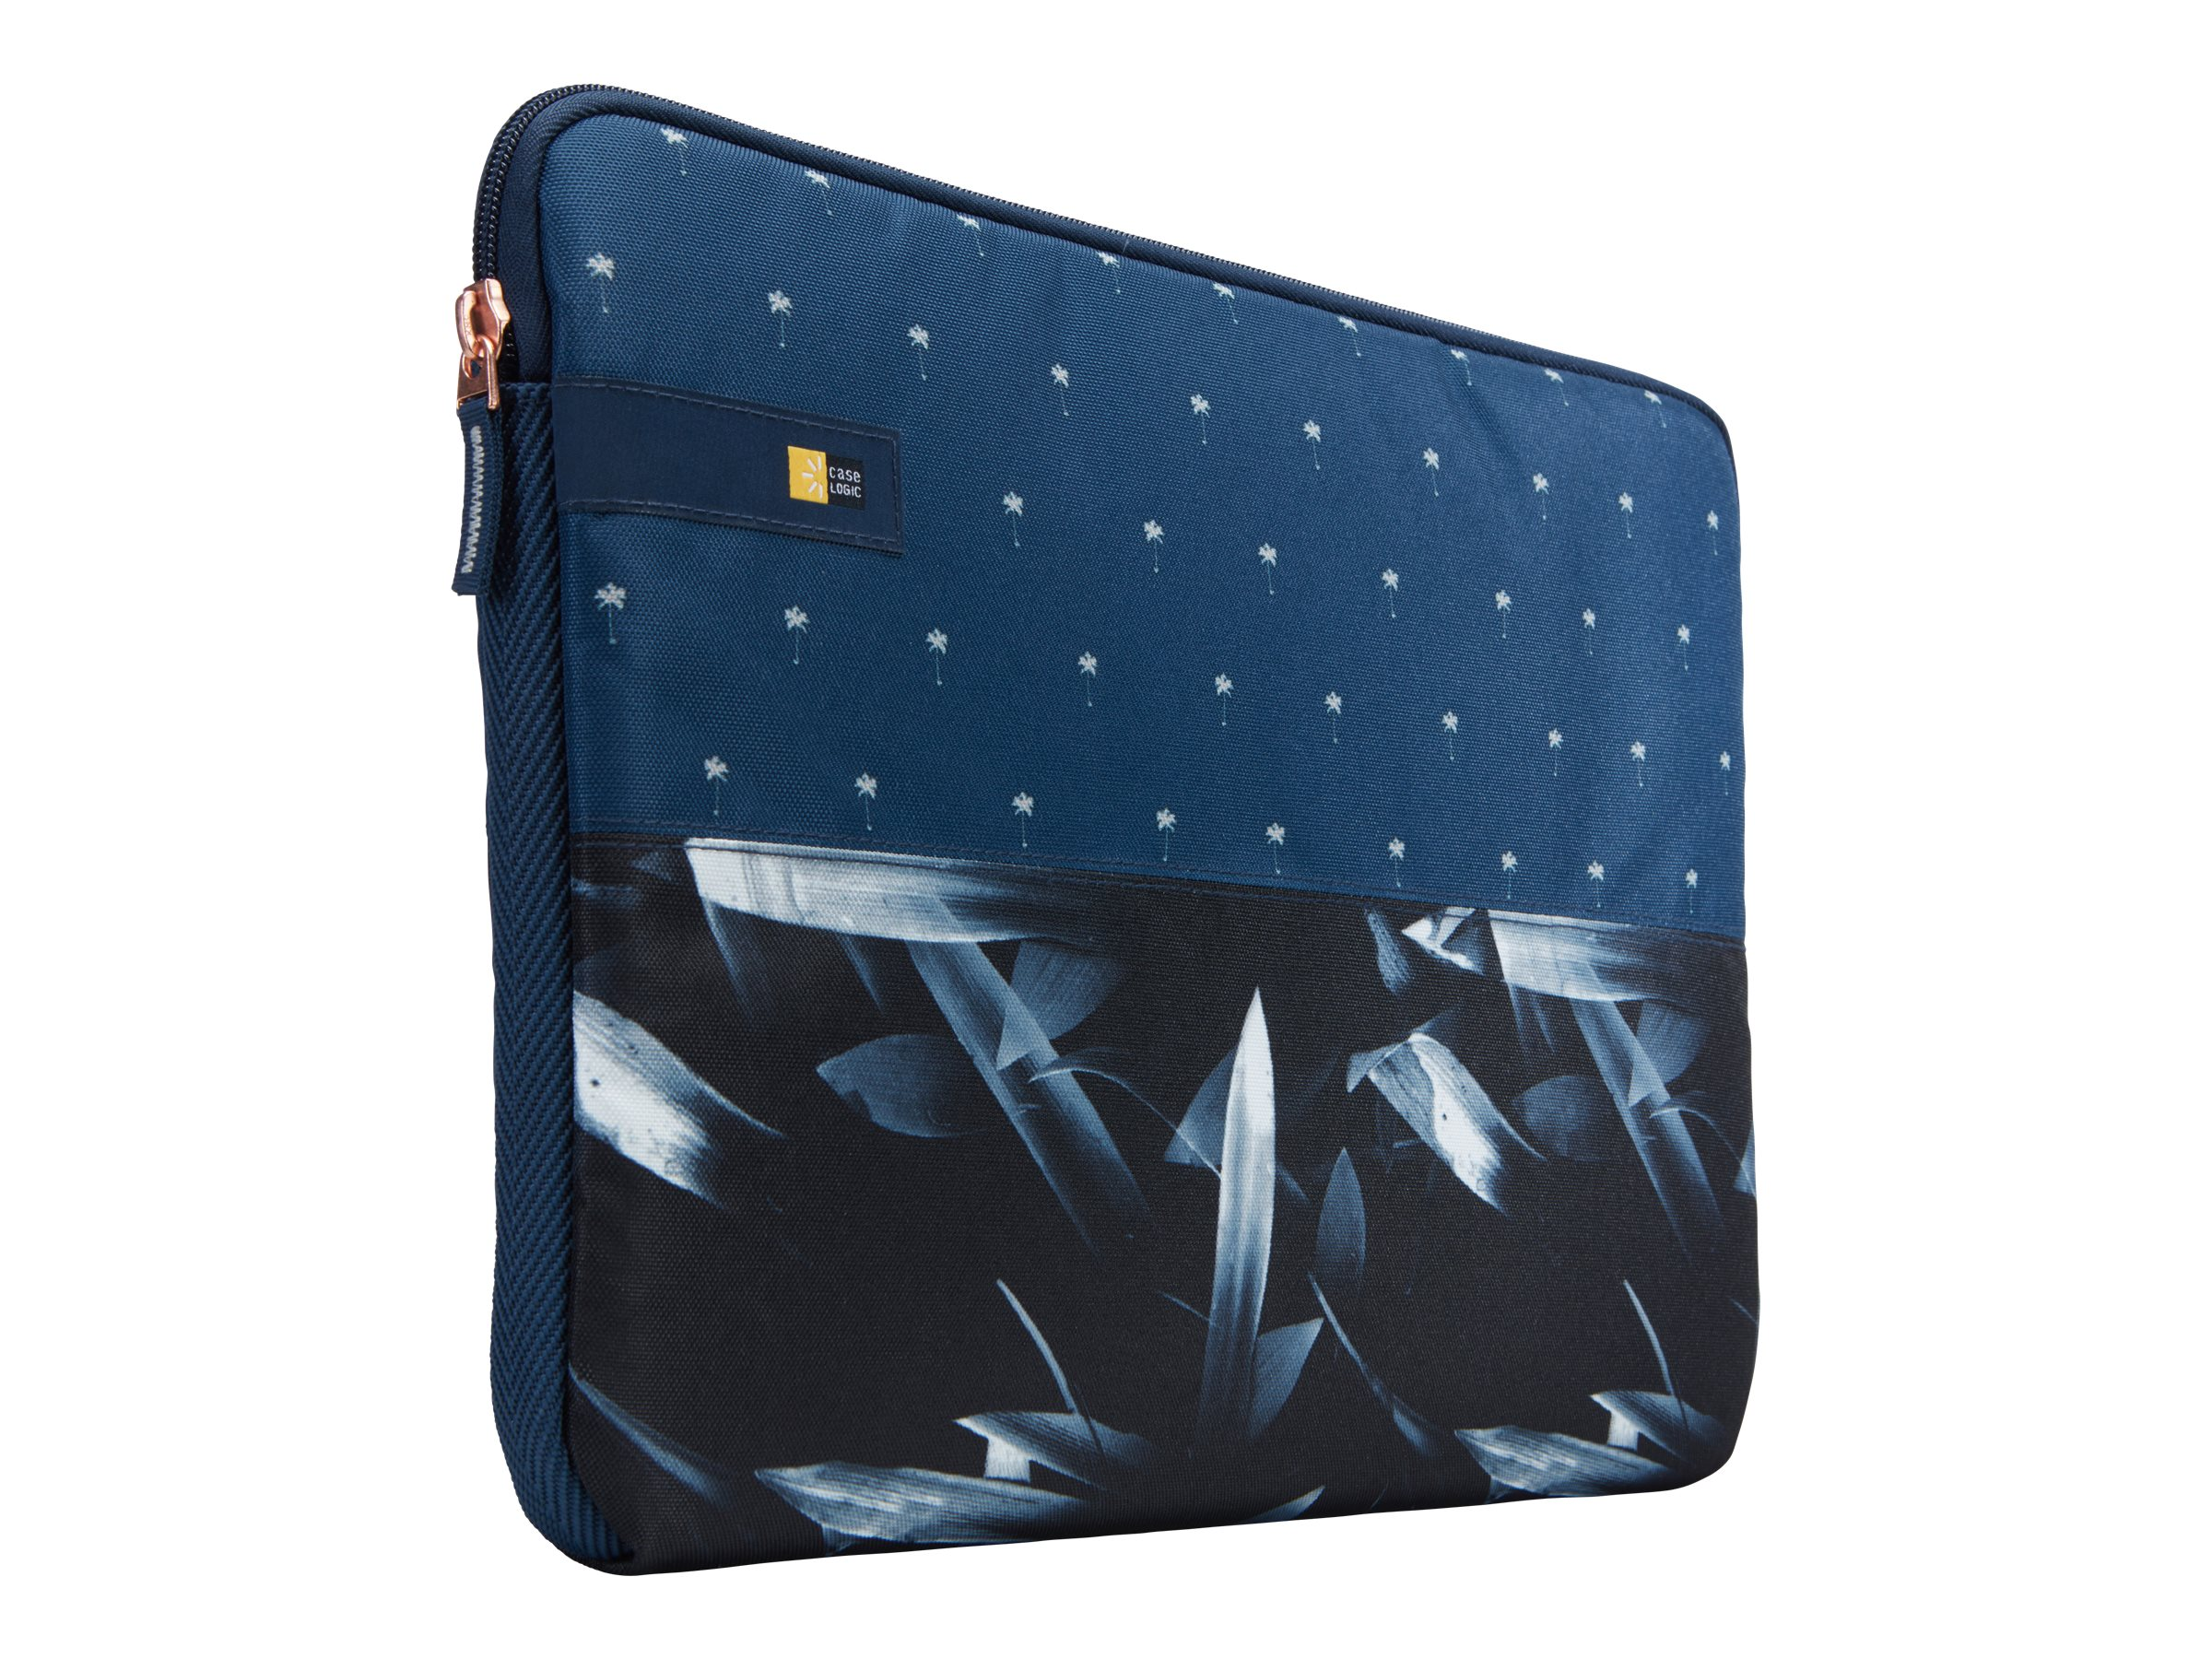 Case Logic Hayes 15.6 Laptop Sleeve, Dark Palm